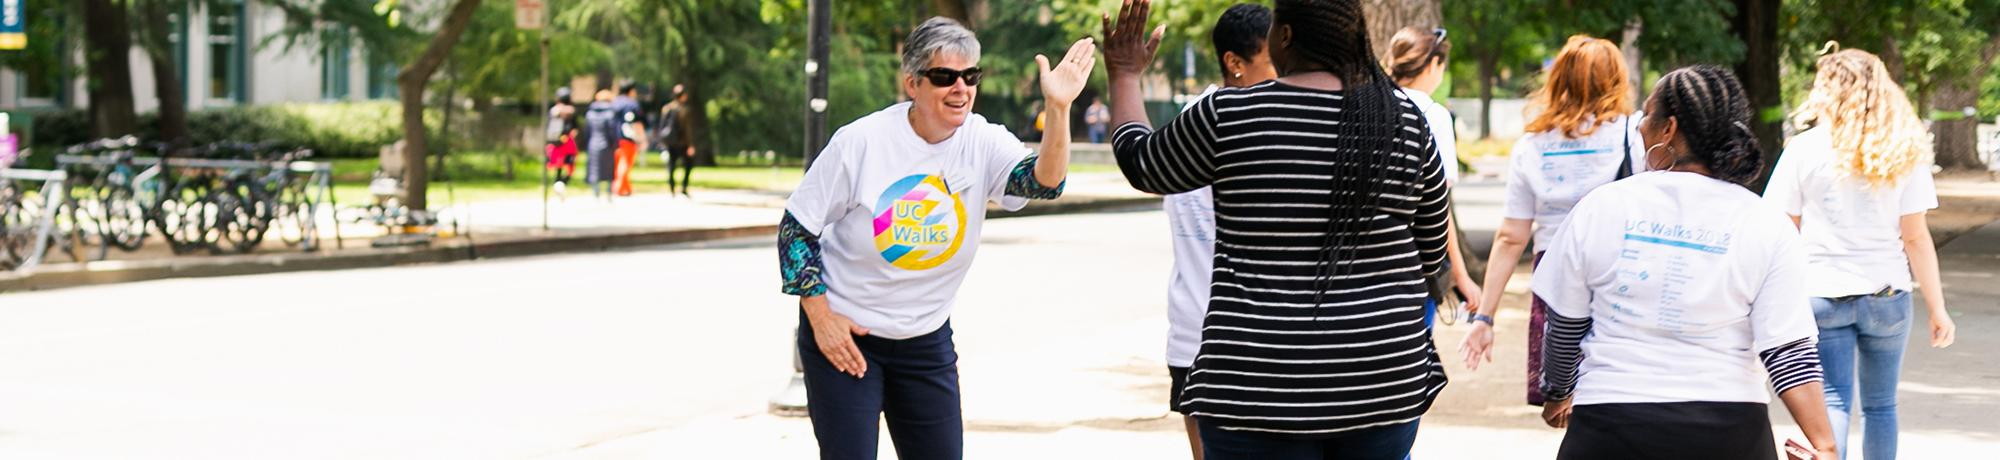 uc davis vc kelly ratliffe giving high fives during a uc walks event